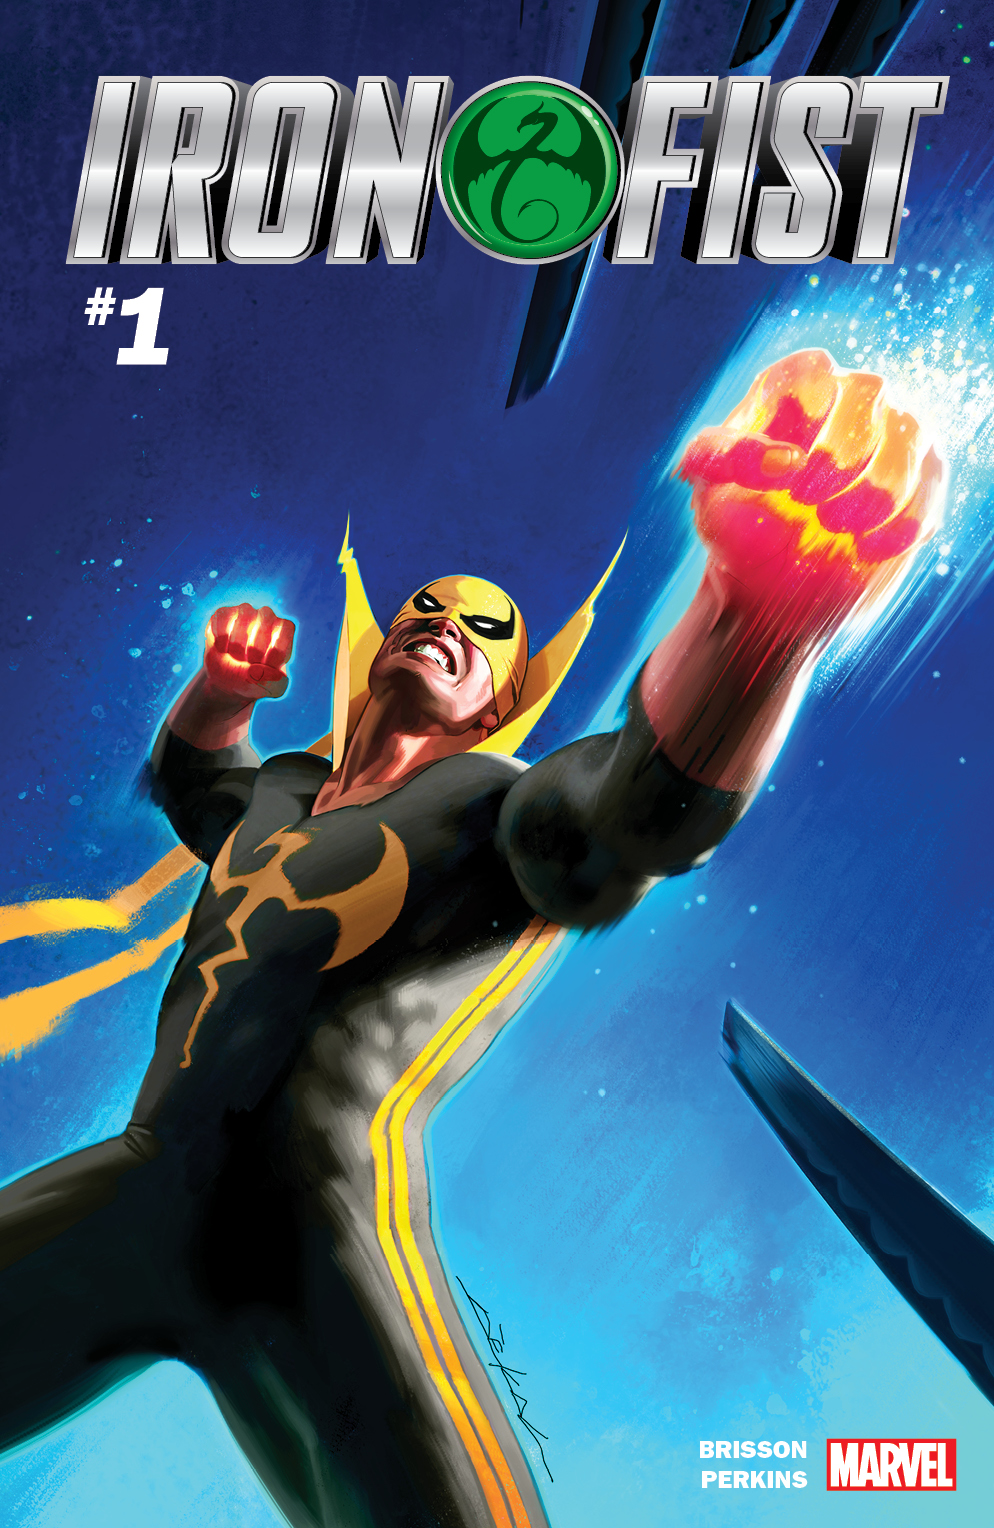 Iron Fist #1 Review: Finding Purpose